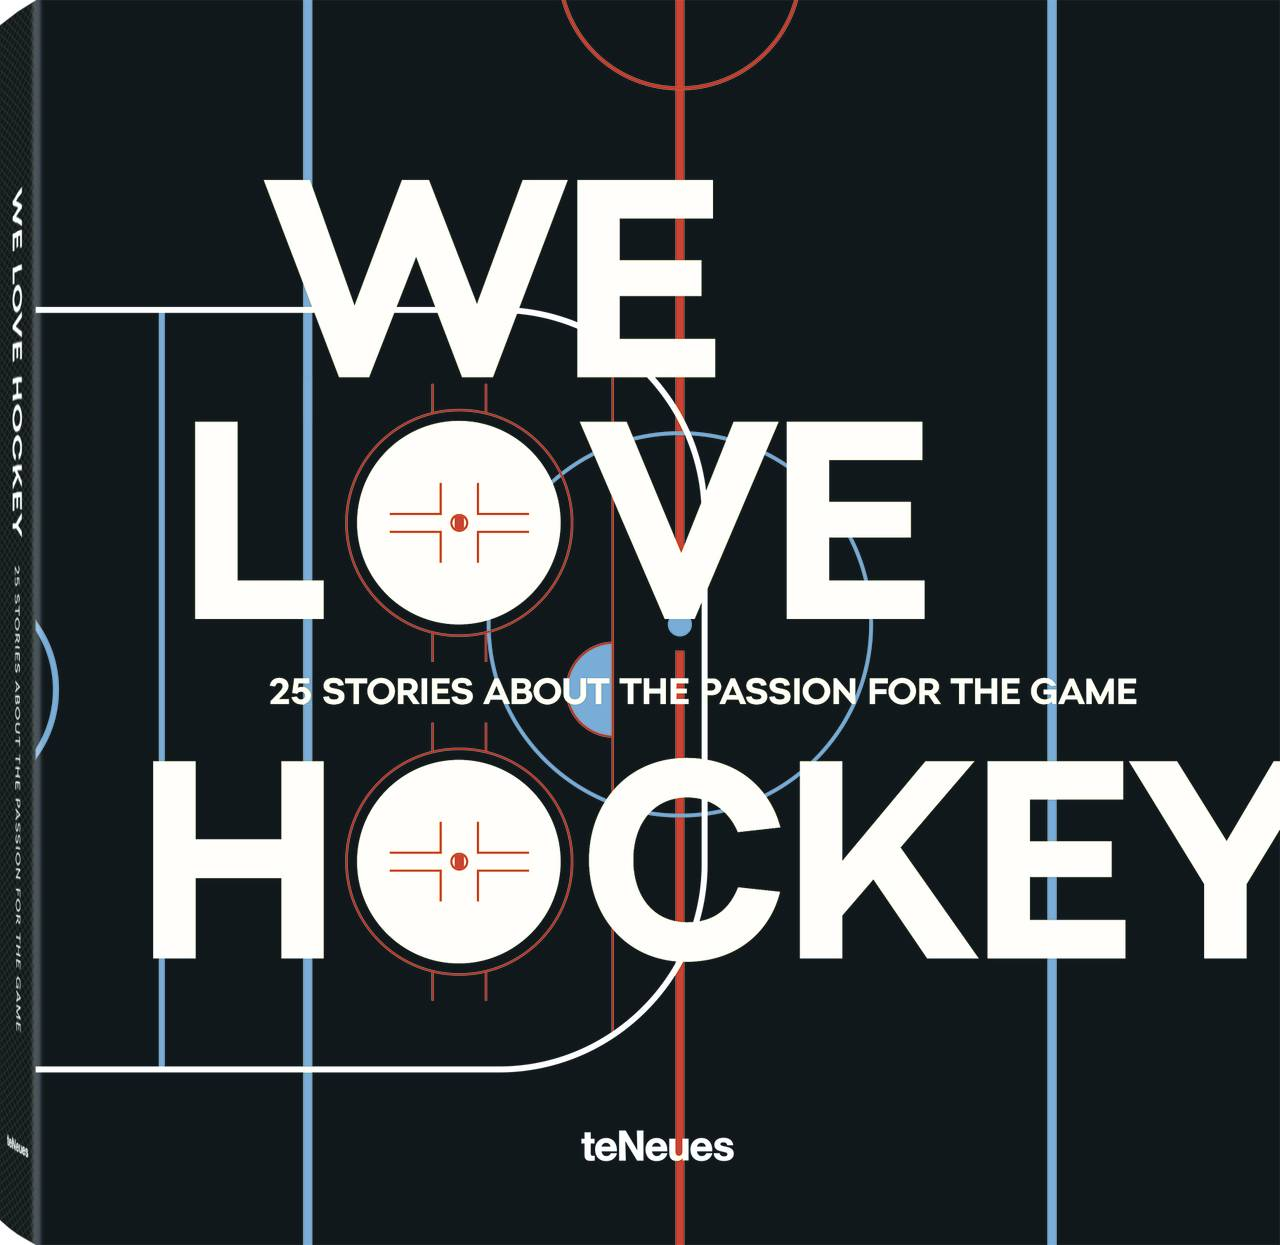 © WE LOVE HOCKEY, published by teNeues, www.teneues.com, © ŠKODA AUTO a.s.